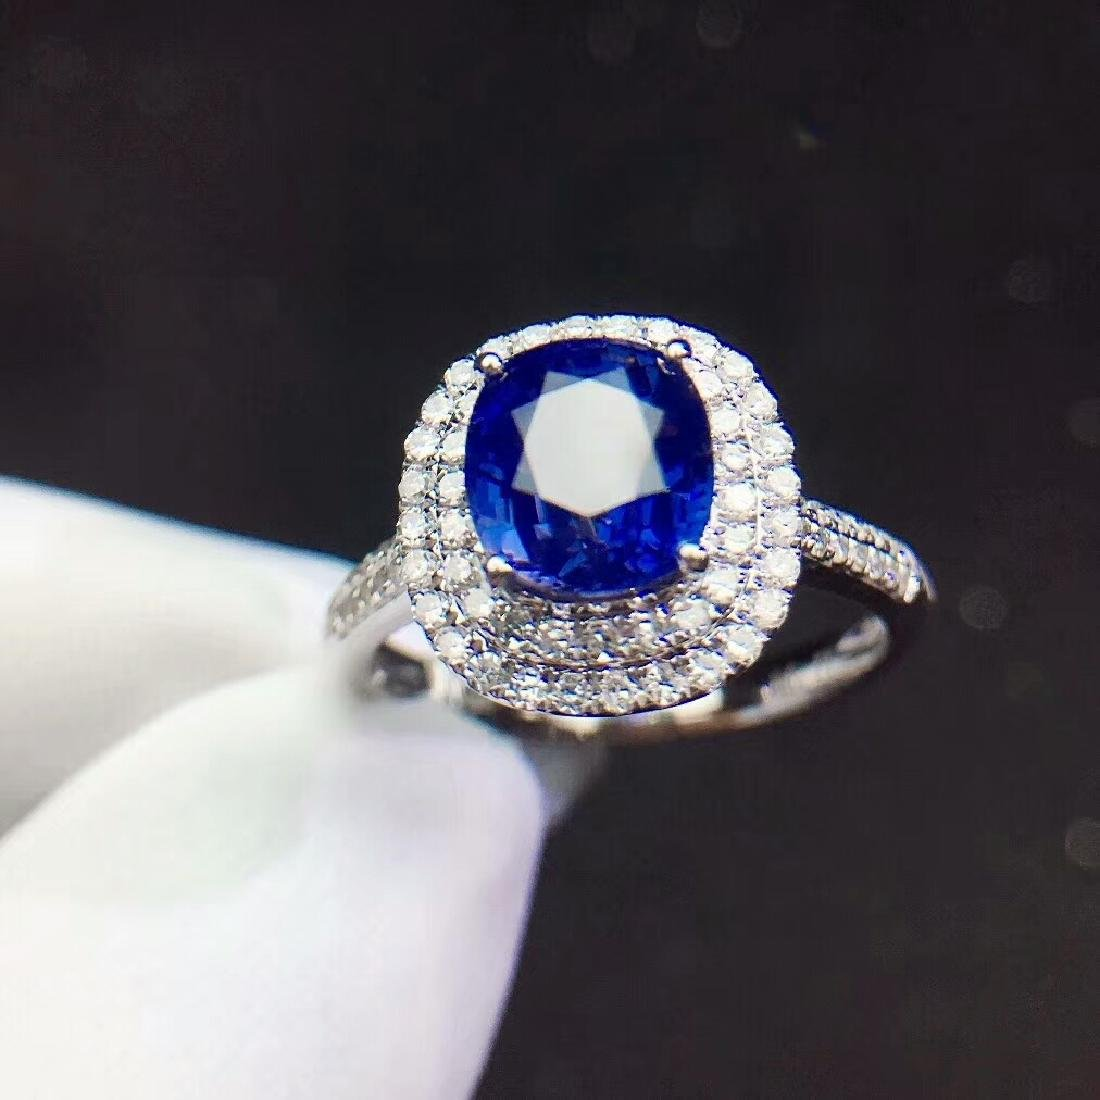 2.21ct Sapphire Ring in 18kt White Gold - 5